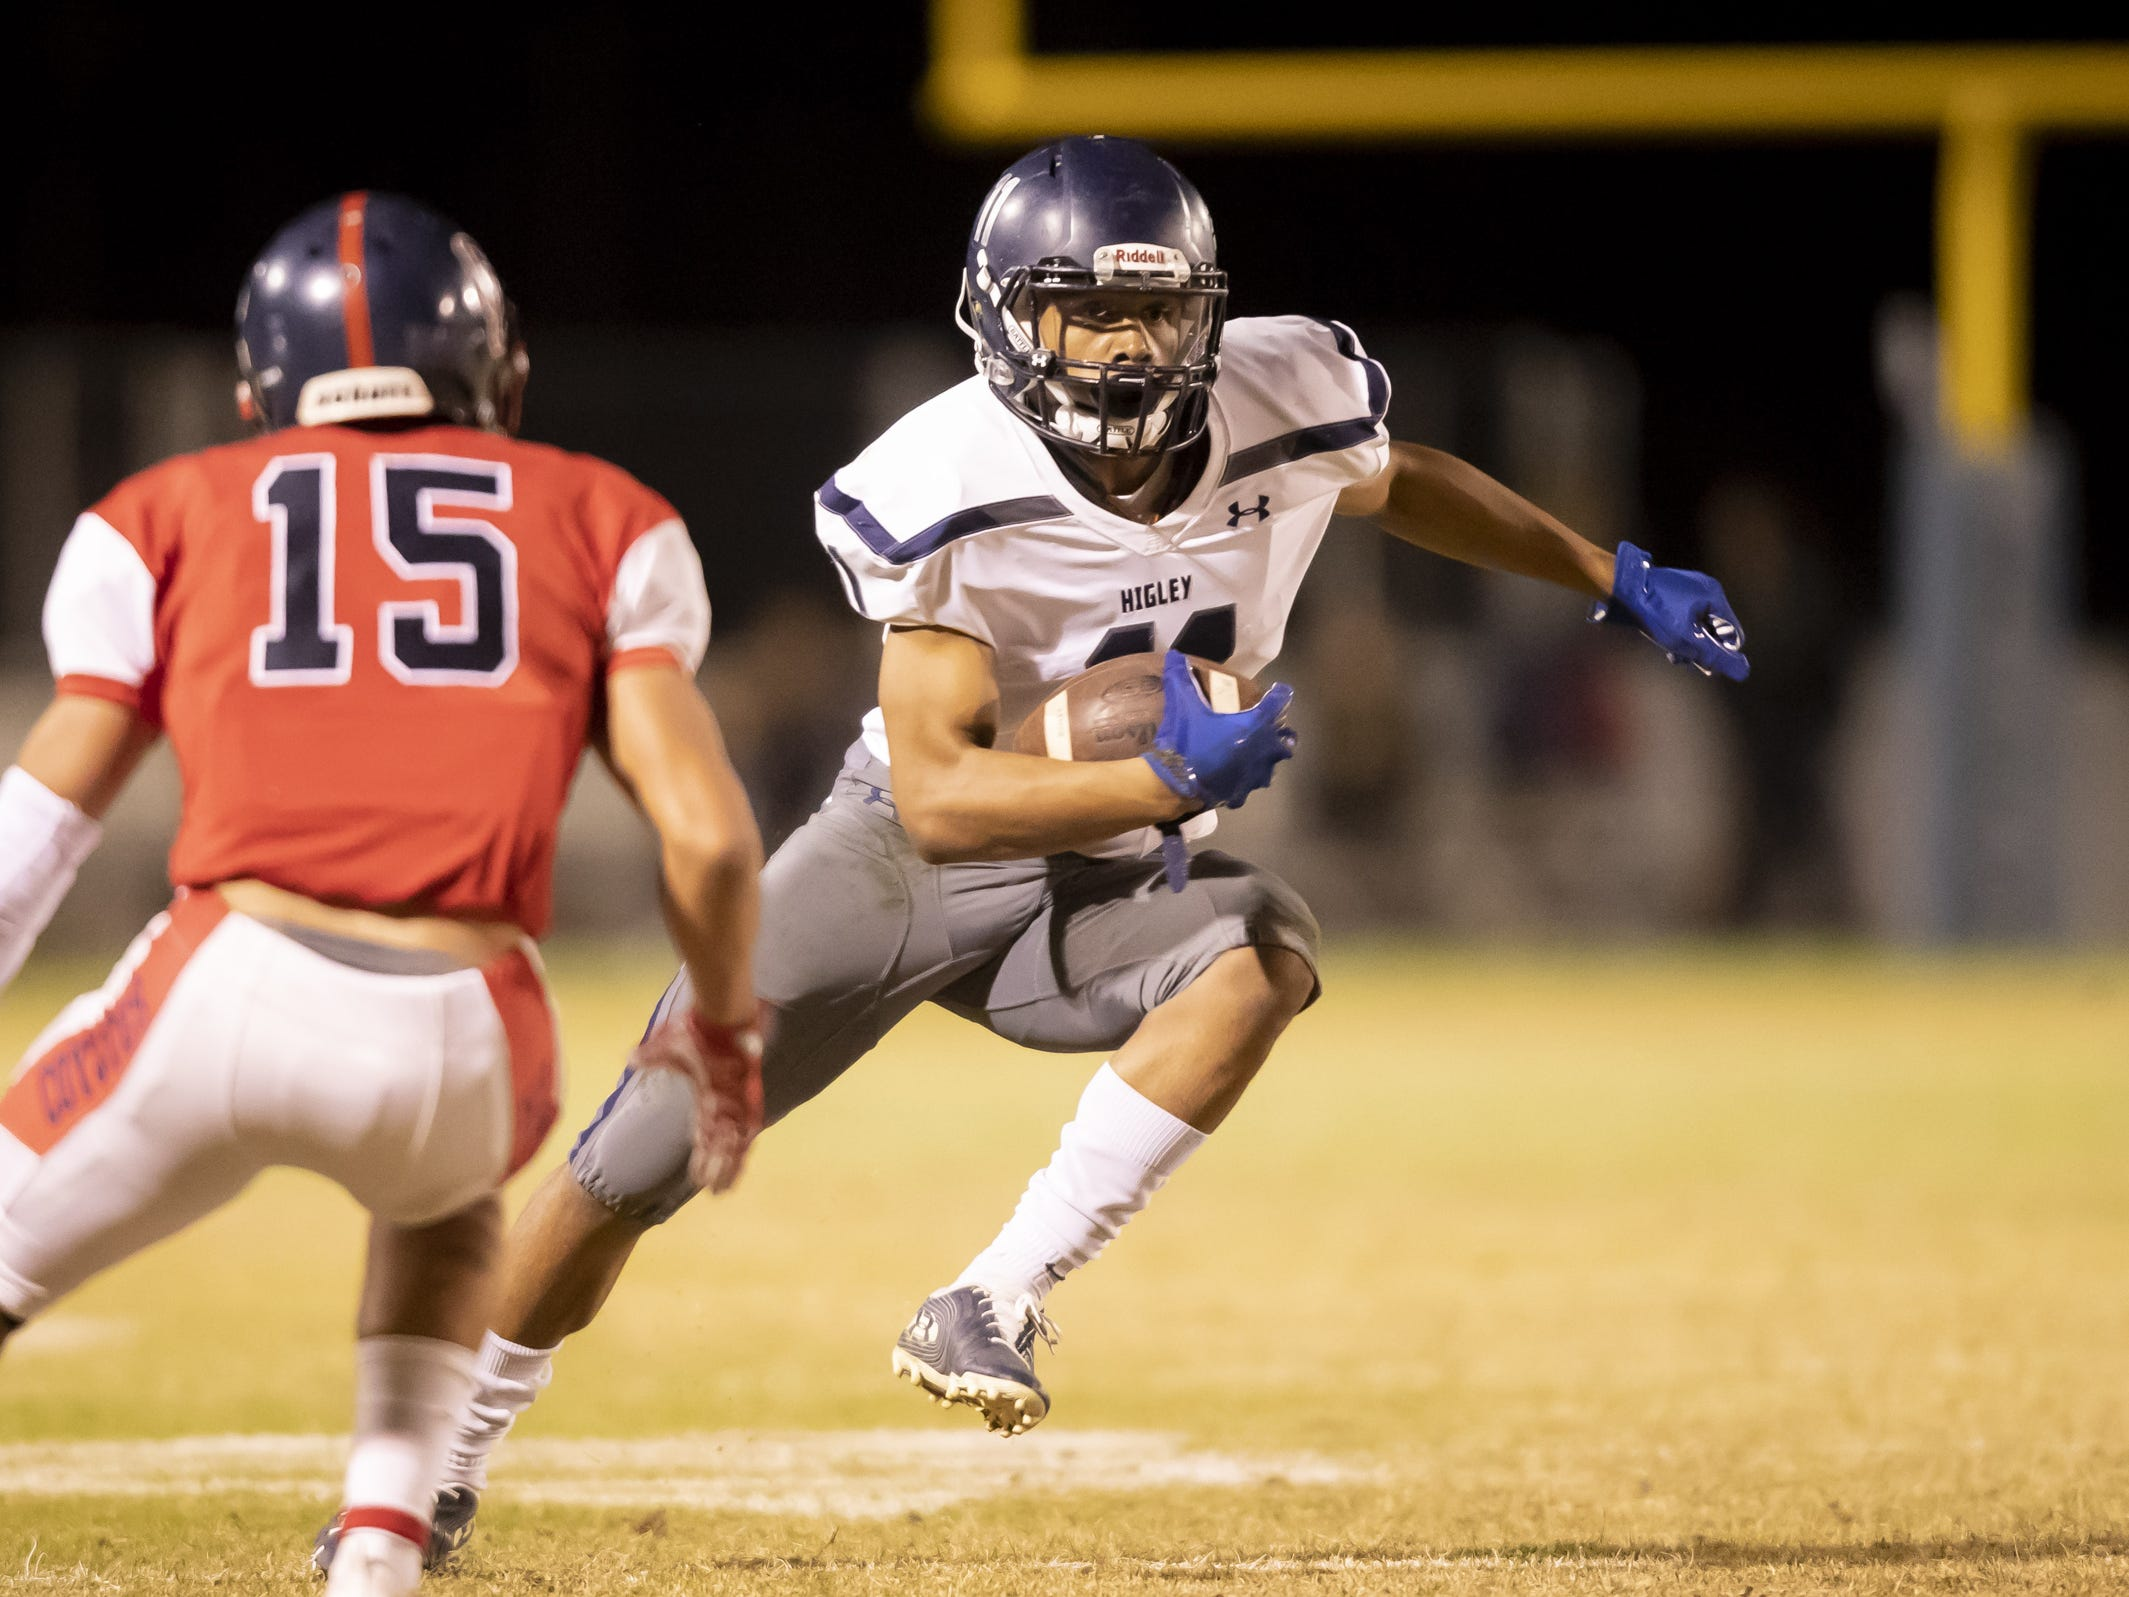 Junior wide receiver Isaiah Eastman (11) of the Higley Knights runs the ball against the Centennial Coyotes in the playoffs at Willow Canyon High School on Friday, November 16, 2018 in Surprise, Arizona. #azhsfb